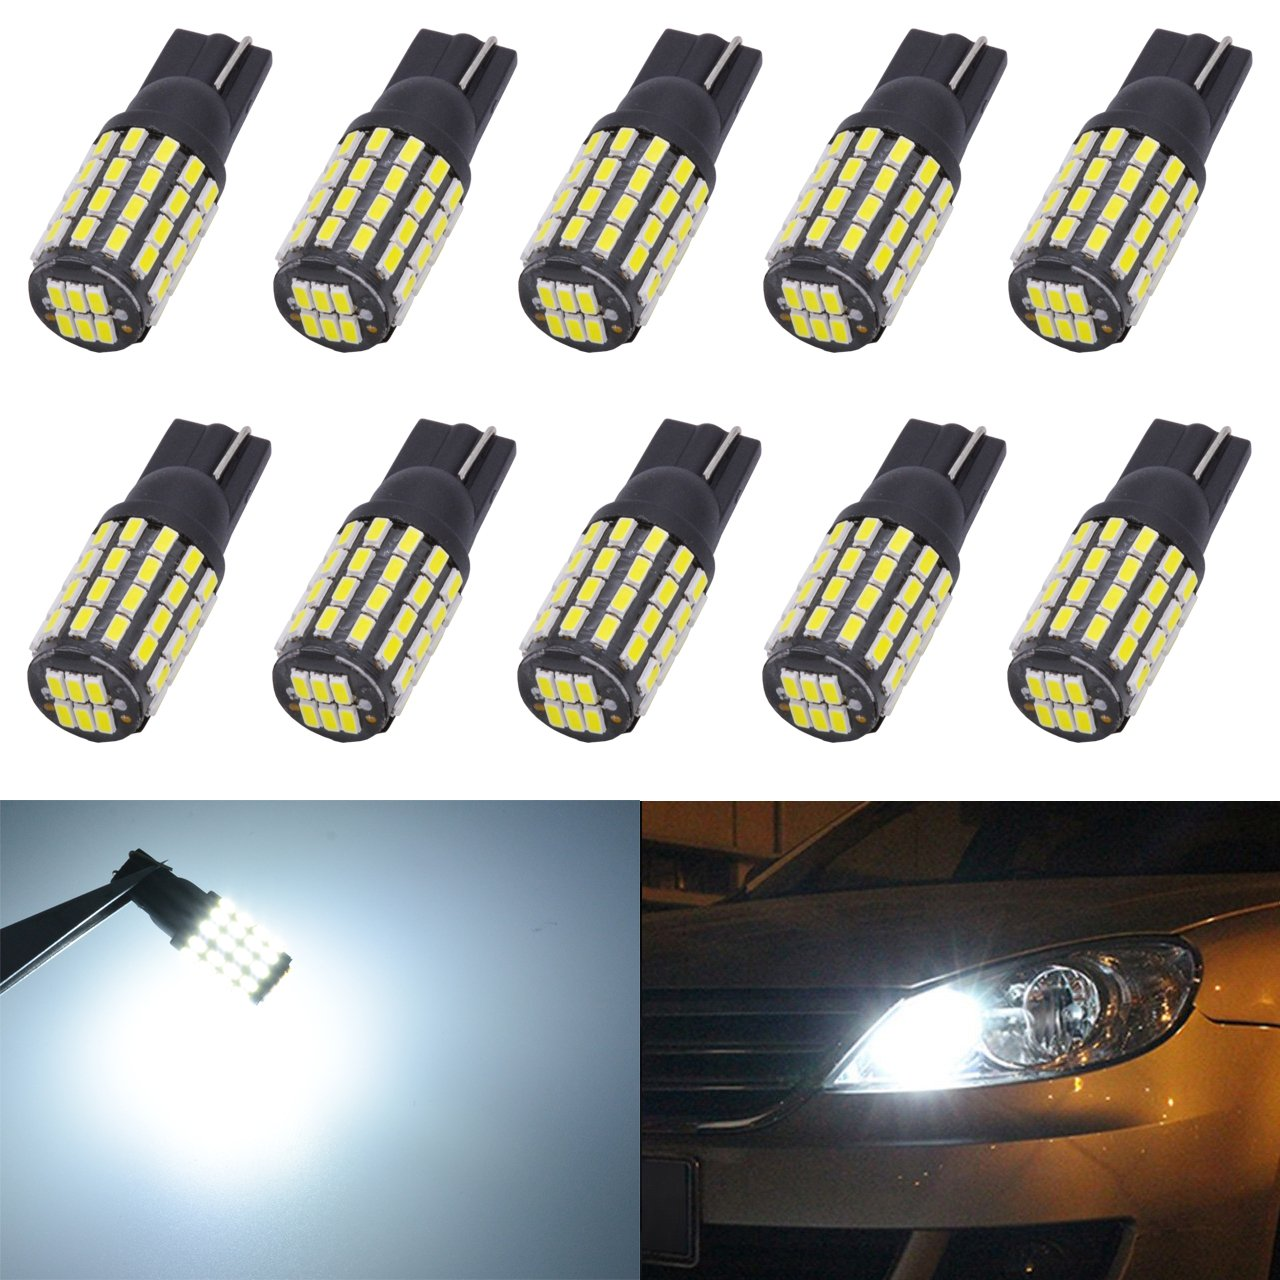 KaTur 10pcs Extremely Bright 800 Lumens High Power T10 168 175 194 2825 W5W 3014 Chipsets 54SMD LED Bulbs Front Rear Sidemarker Light Bulbs License Plate Parking Tail Back Up Light 12V-24V Xenon White